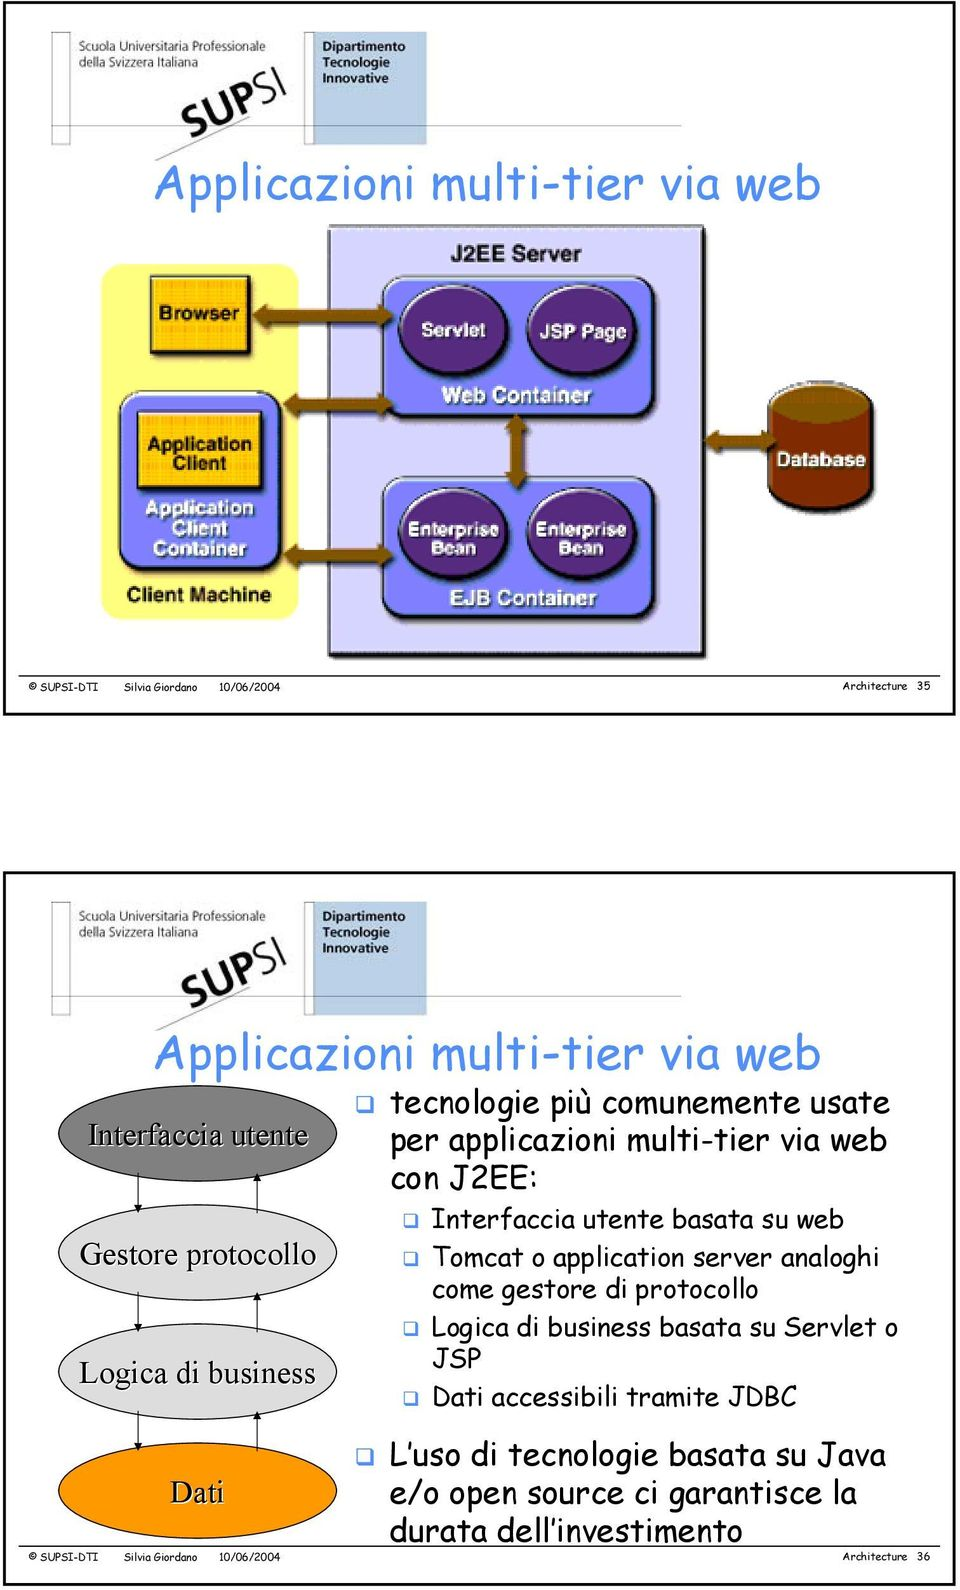 web Tomcat o application server analoghi come gestore di protocollo Logica di business basata su Servlet o JSP Dati accessibili tramite JDBC L